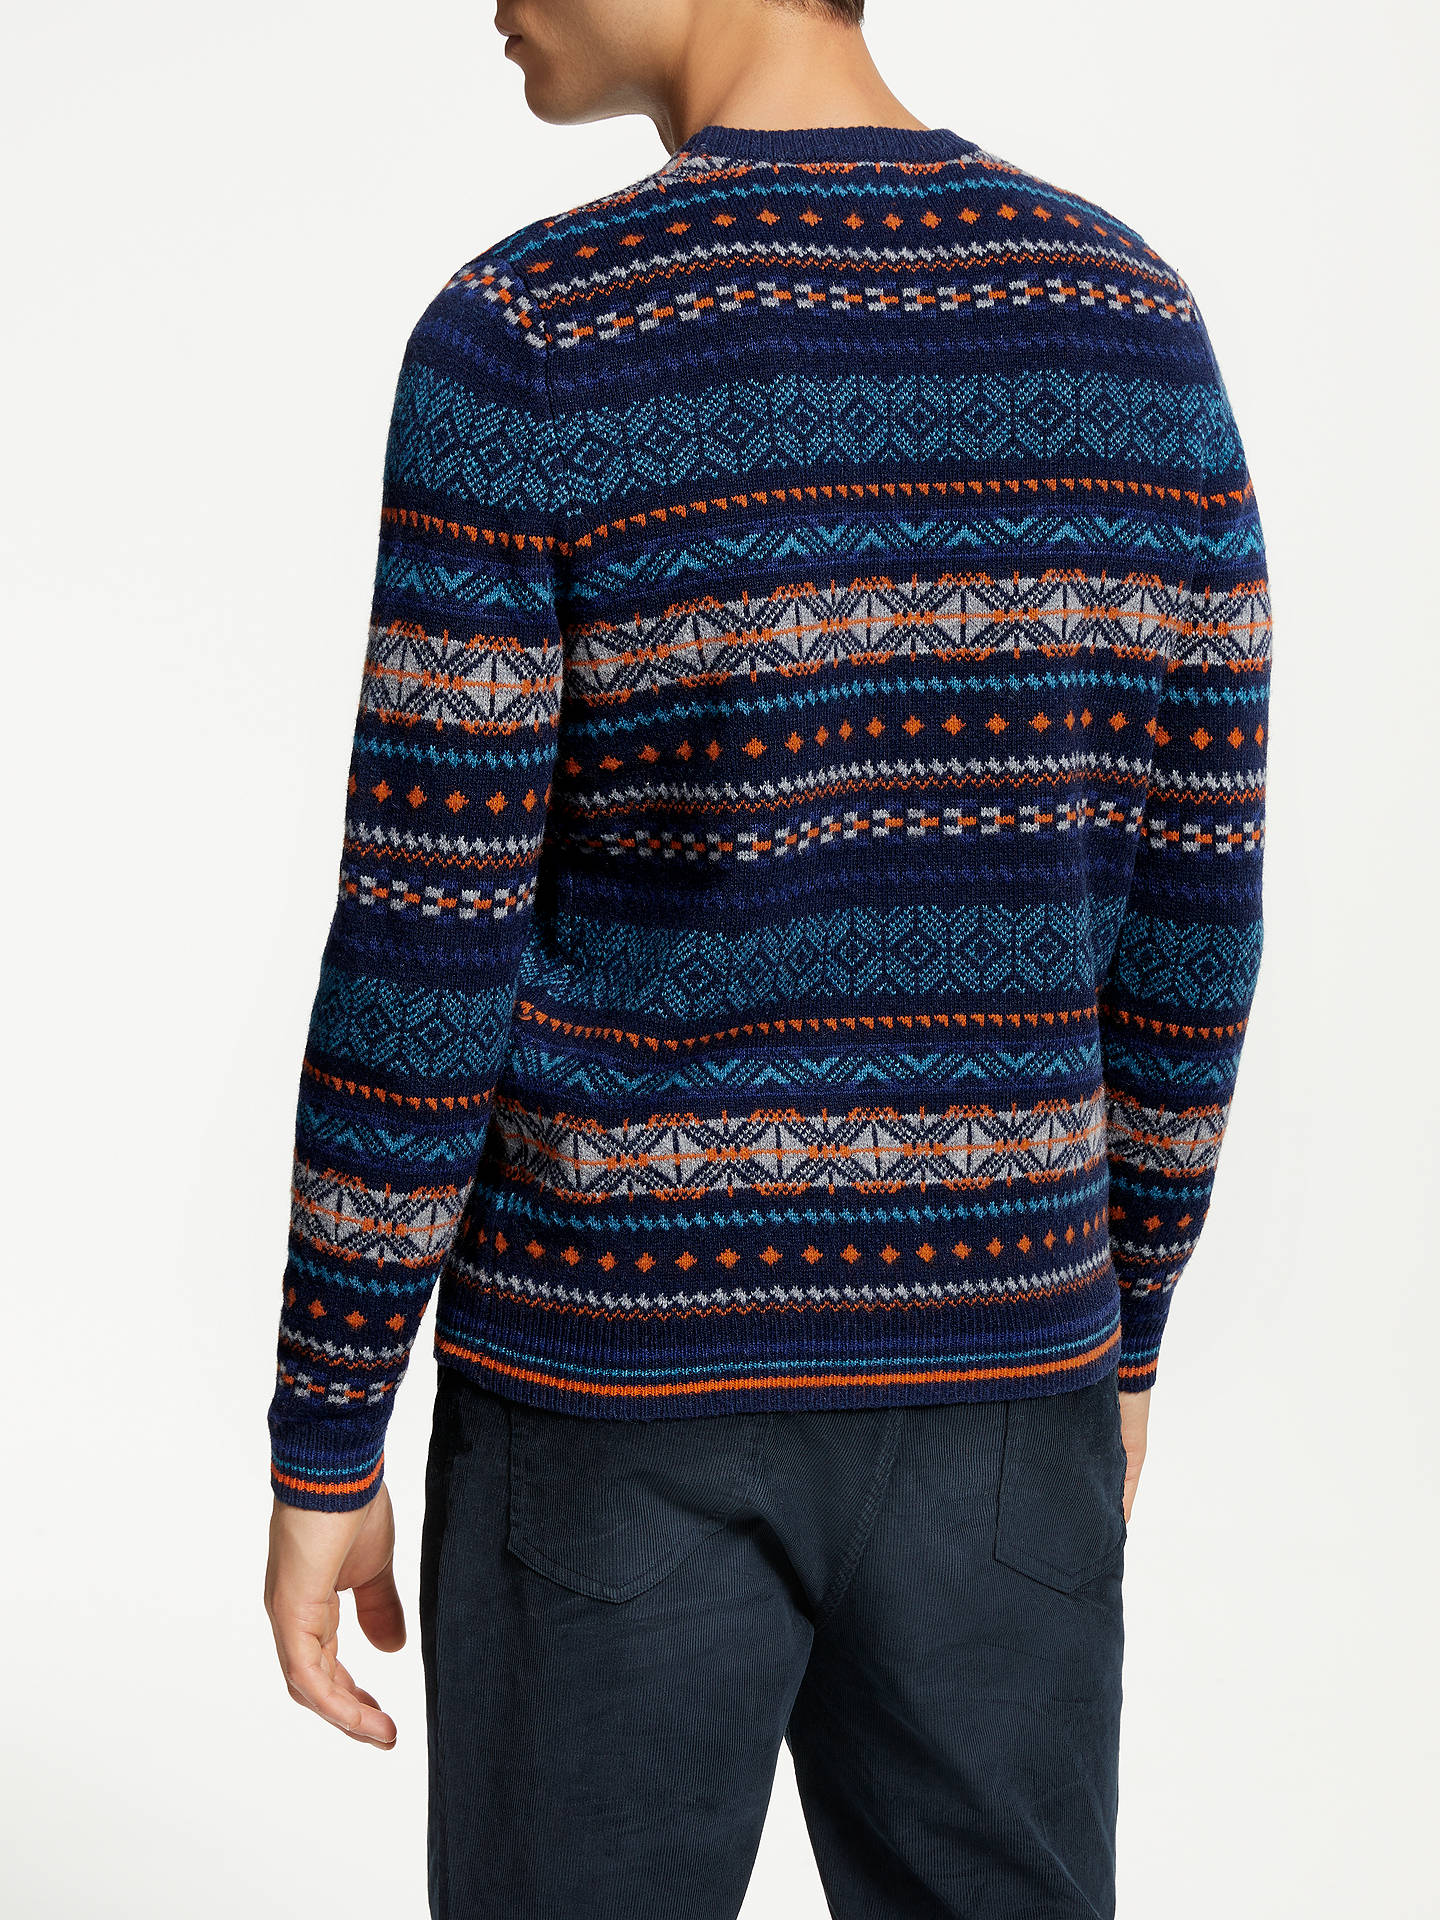 Buy John Lewis & Partners Geometric Lambswool Fair Isle Knit Jumper, Blue, M Online at johnlewis.com